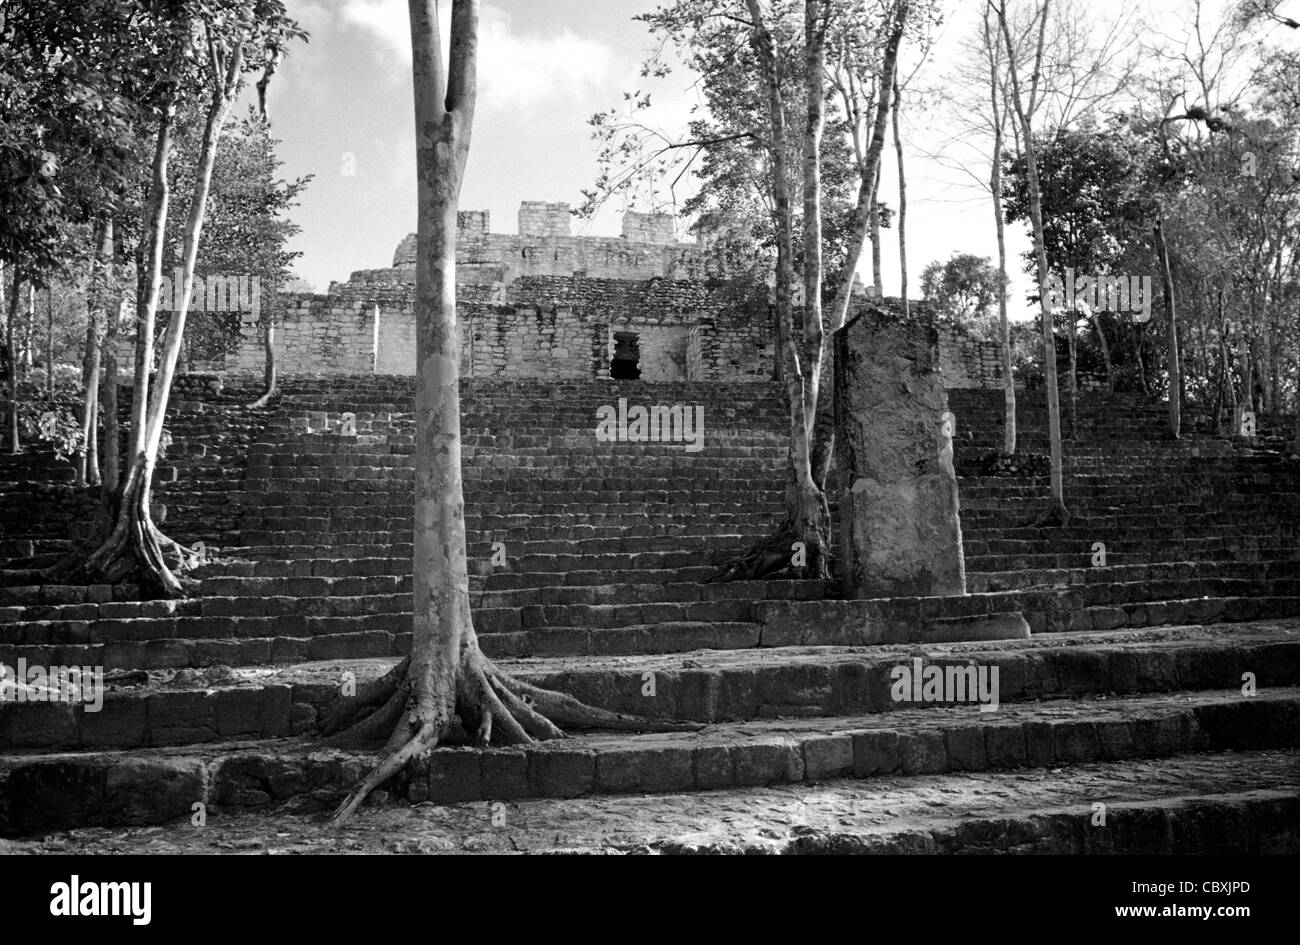 Structure VIII at the Mayan ruins of Calakmul, Campeche, Mexico. - Stock Image